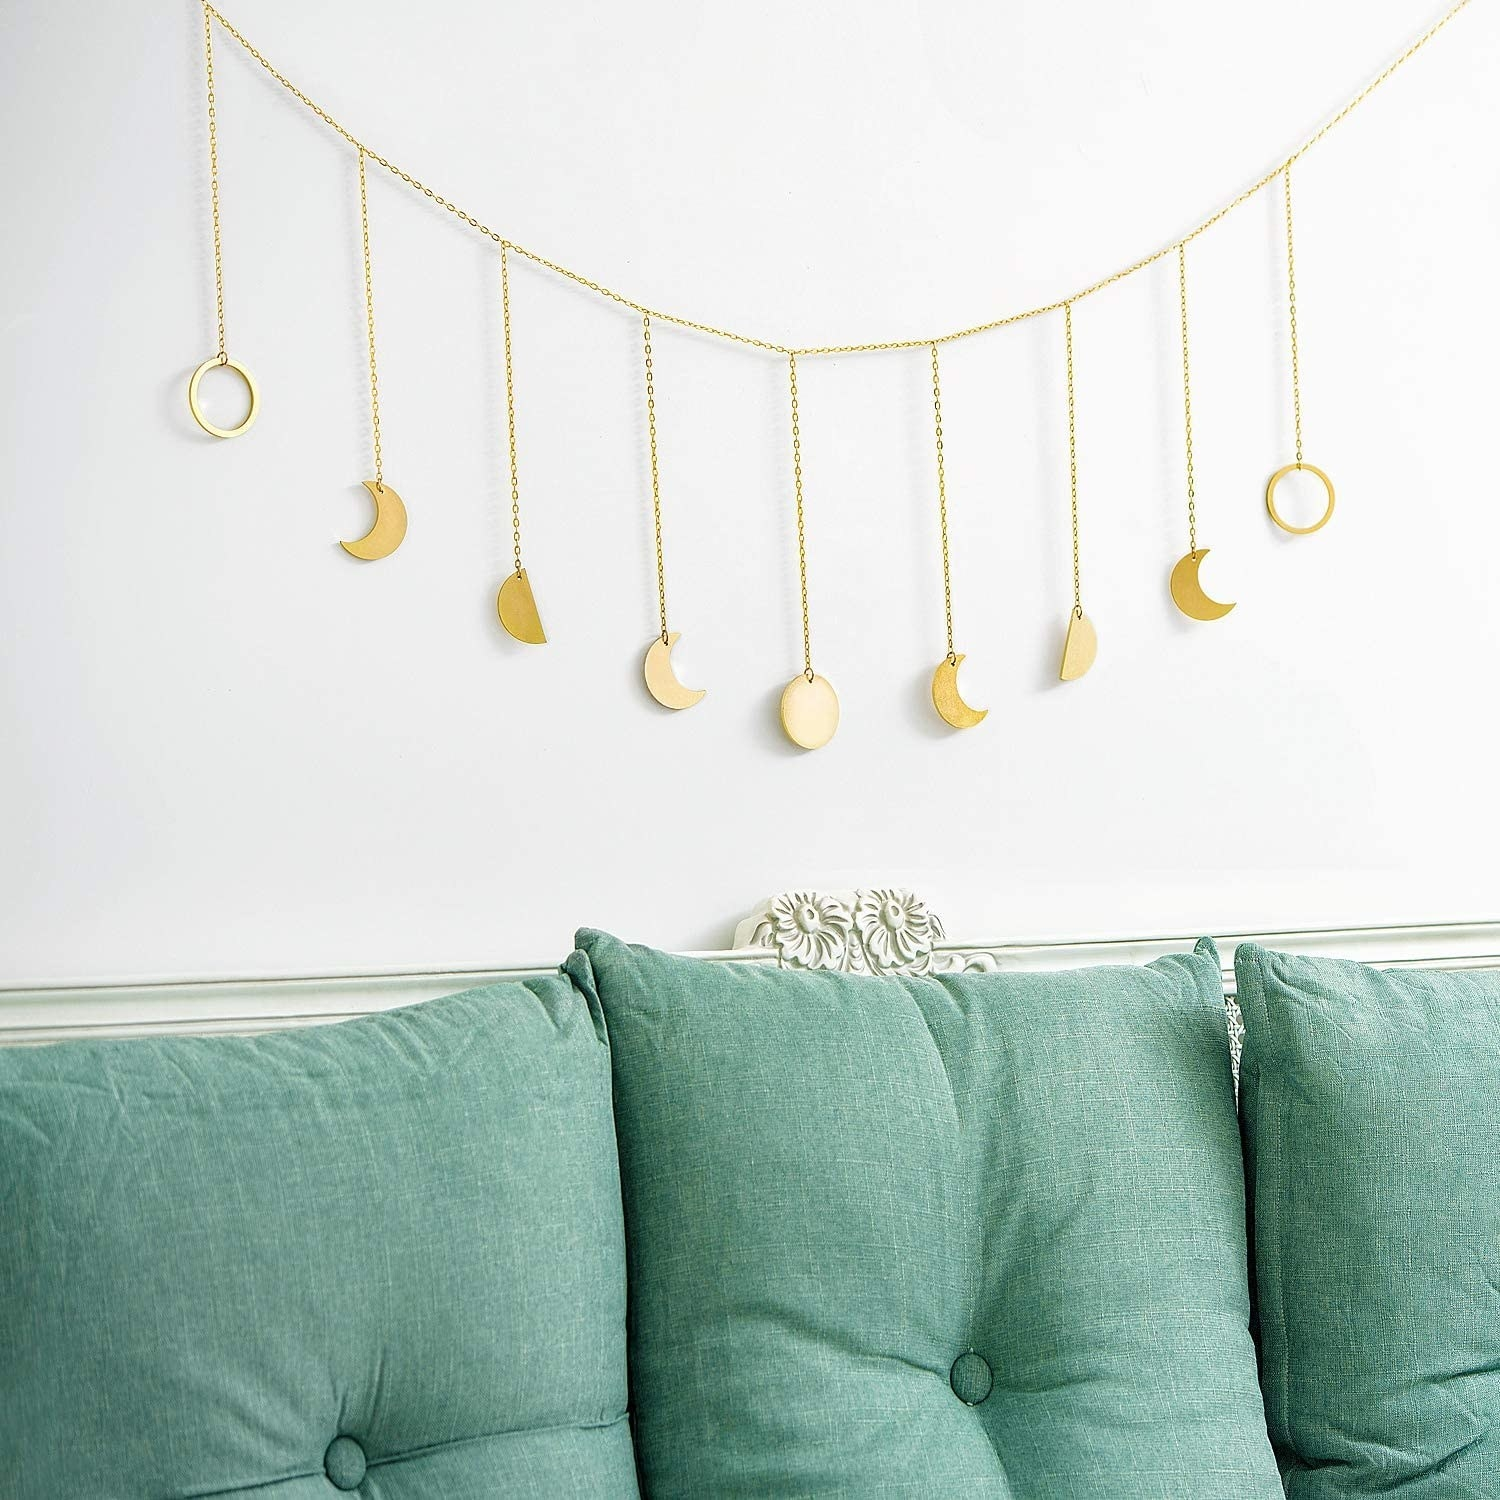 Moon phases in gold colored pressed metal hanging from delicate chains